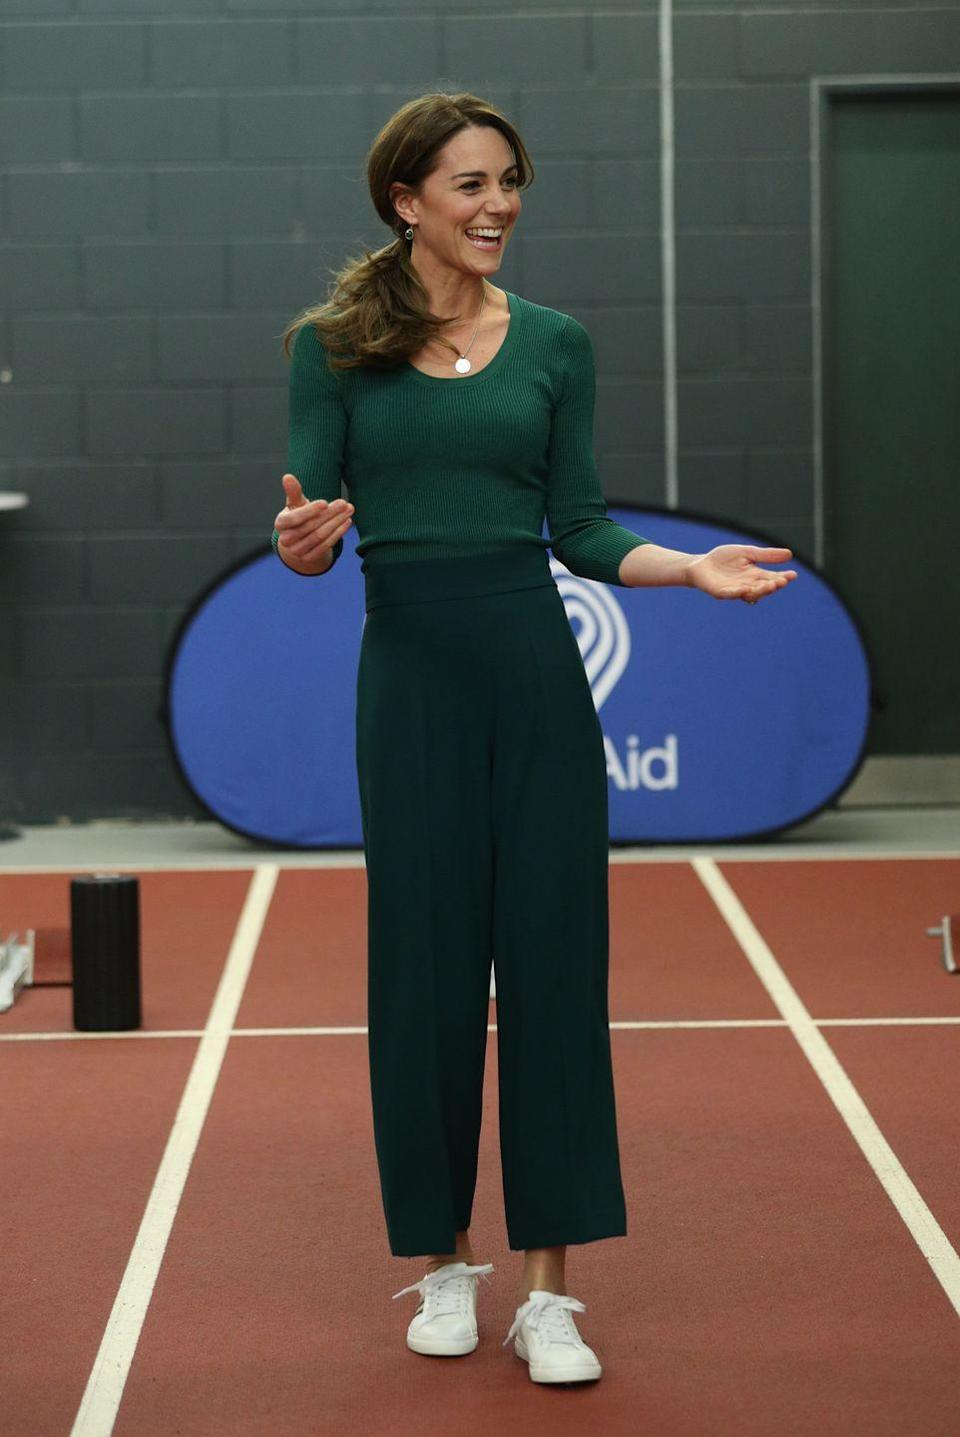 "<p>Kate chose an <a href=""https://www.townandcountrymag.com/society/tradition/a31112240/kate-middleton-green-athleisure-look-sportsaid-photos/"" rel=""nofollow noopener"" target=""_blank"" data-ylk=""slk:all-green athleisure ensemble"" class=""link rapid-noclick-resp"">all-green athleisure ensemble</a> to visit a SportsAid event at the London Stadium in Stratford. The wide-leg pants are <a href=""https://twitter.com/kateroyalcloset/status/1232637744230412288"" rel=""nofollow noopener"" target=""_blank"" data-ylk=""slk:reportedly"" class=""link rapid-noclick-resp"">reportedly</a> from Zara, one of the Duchess's favorite shops. And she accessorized the look with a sweet necklace engraved with ""GCL""—<a href=""https://www.townandcountrymag.com/style/fashion-trends/a30642875/kate-middleton-gold-necklace-prince-george-louis-princess-charlotte/"" rel=""nofollow noopener"" target=""_blank"" data-ylk=""slk:a tiny tribute to her three children: George, Charlotte, and Louis"" class=""link rapid-noclick-resp"">a tiny tribute to her three children: George, Charlotte, and Louis</a>.</p>"